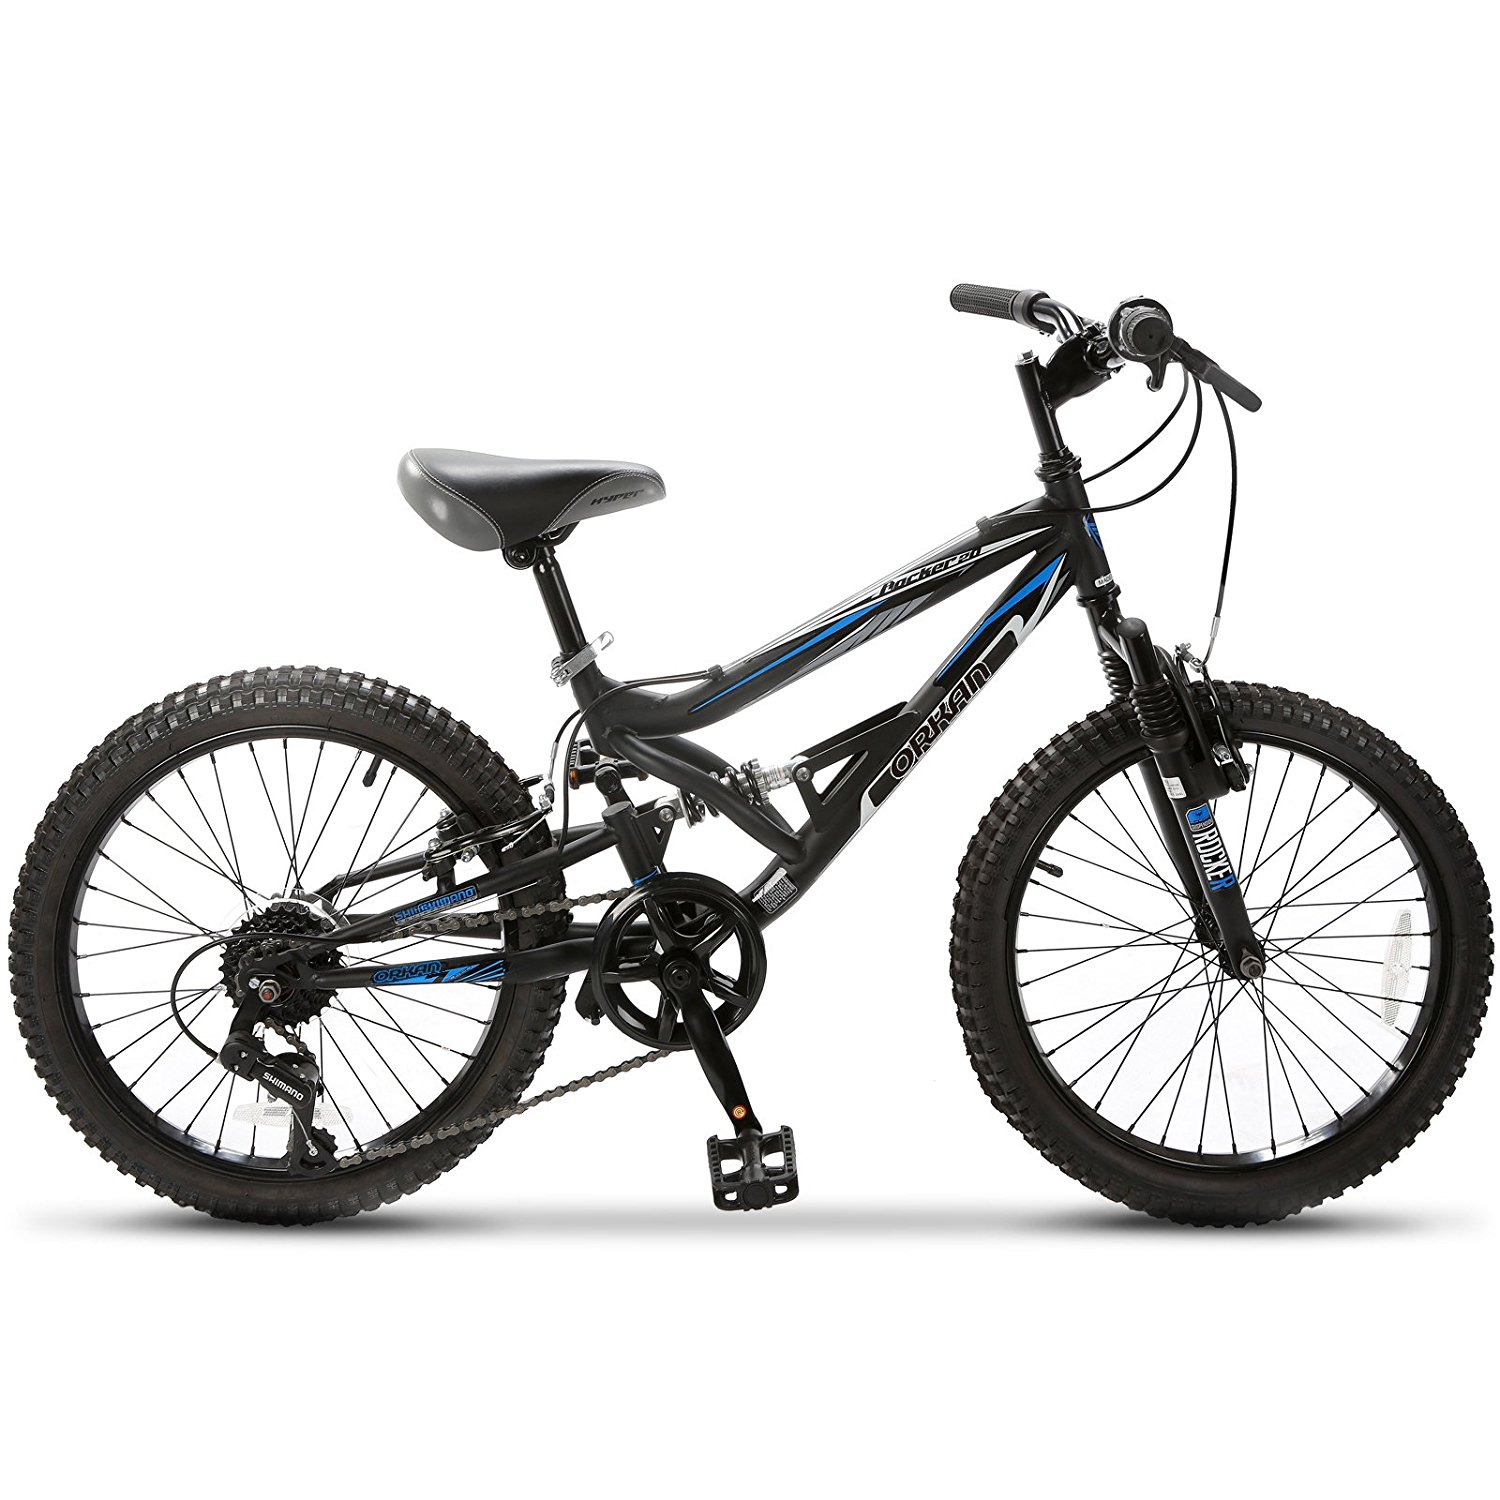 Uenjoy 20-Inch Children Kid's Mountain Bike 7 Speed Shimano Hybrid bike,Black by Uenjoy